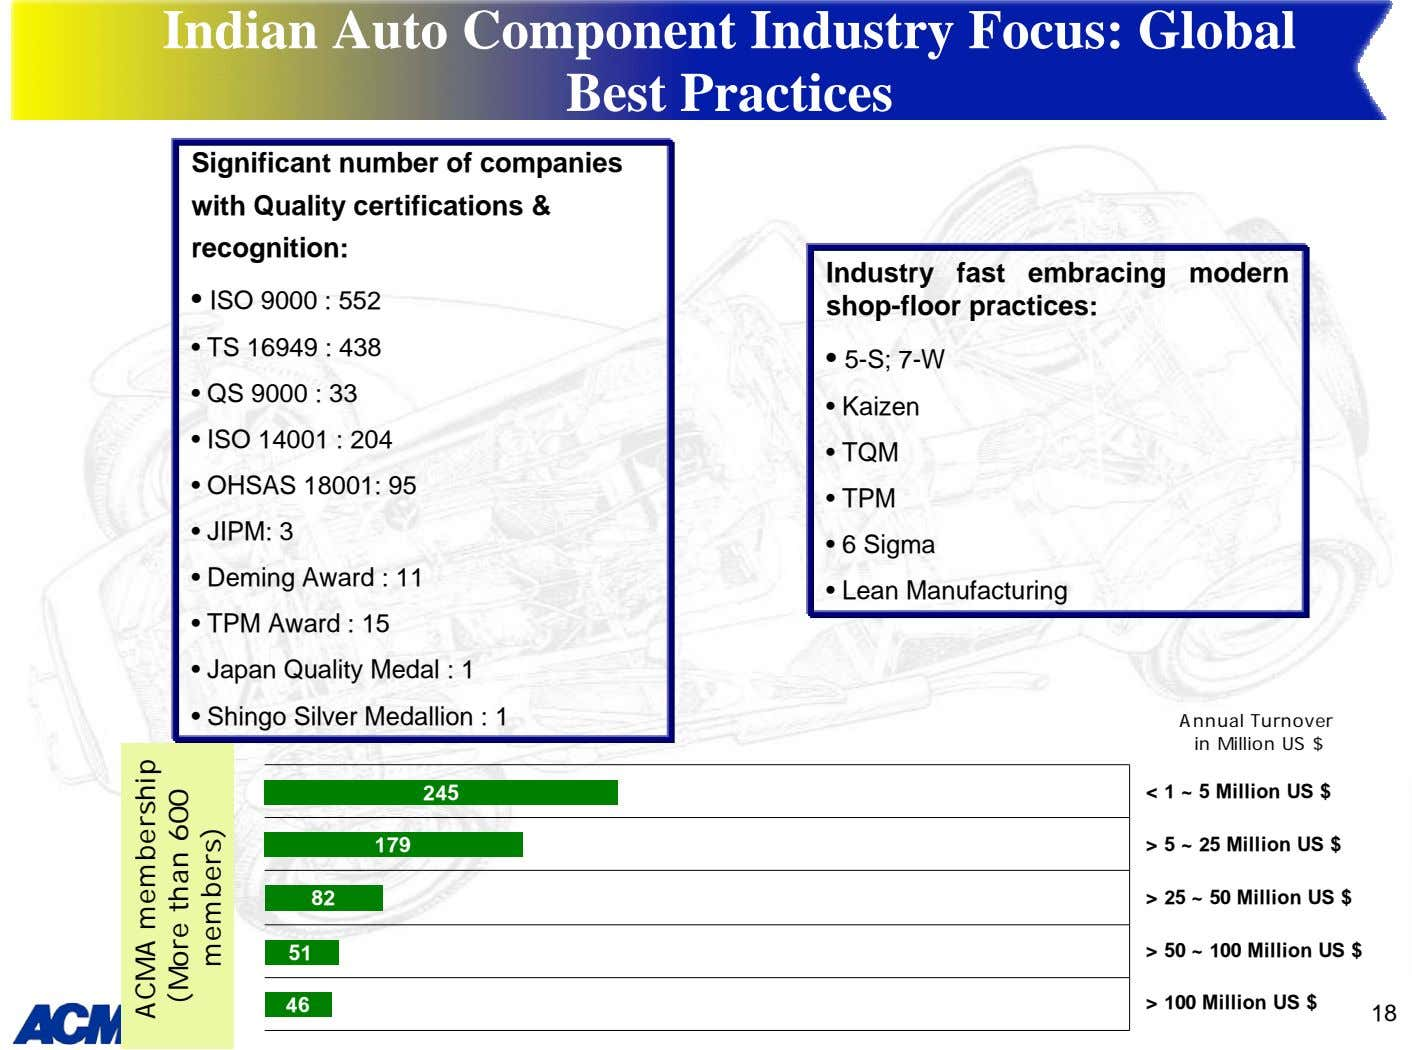 Indian Auto Component Industry Focus: Global Best Practices Significant number of companies with Quality certifications